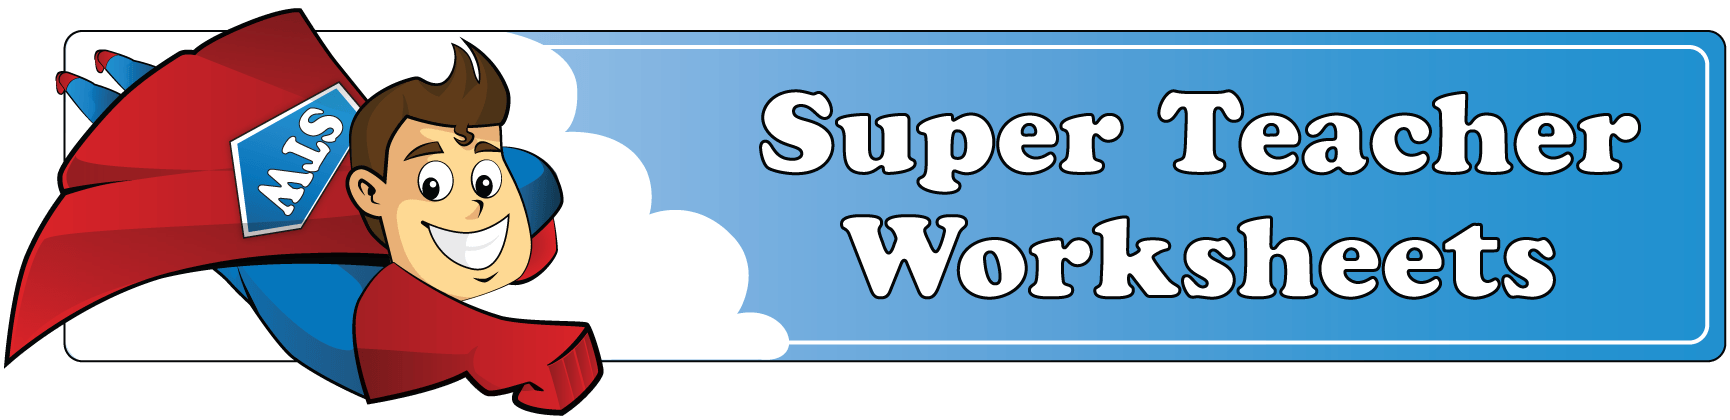 Log In to Super Teacher Worksheets – Superteacher Worksheet